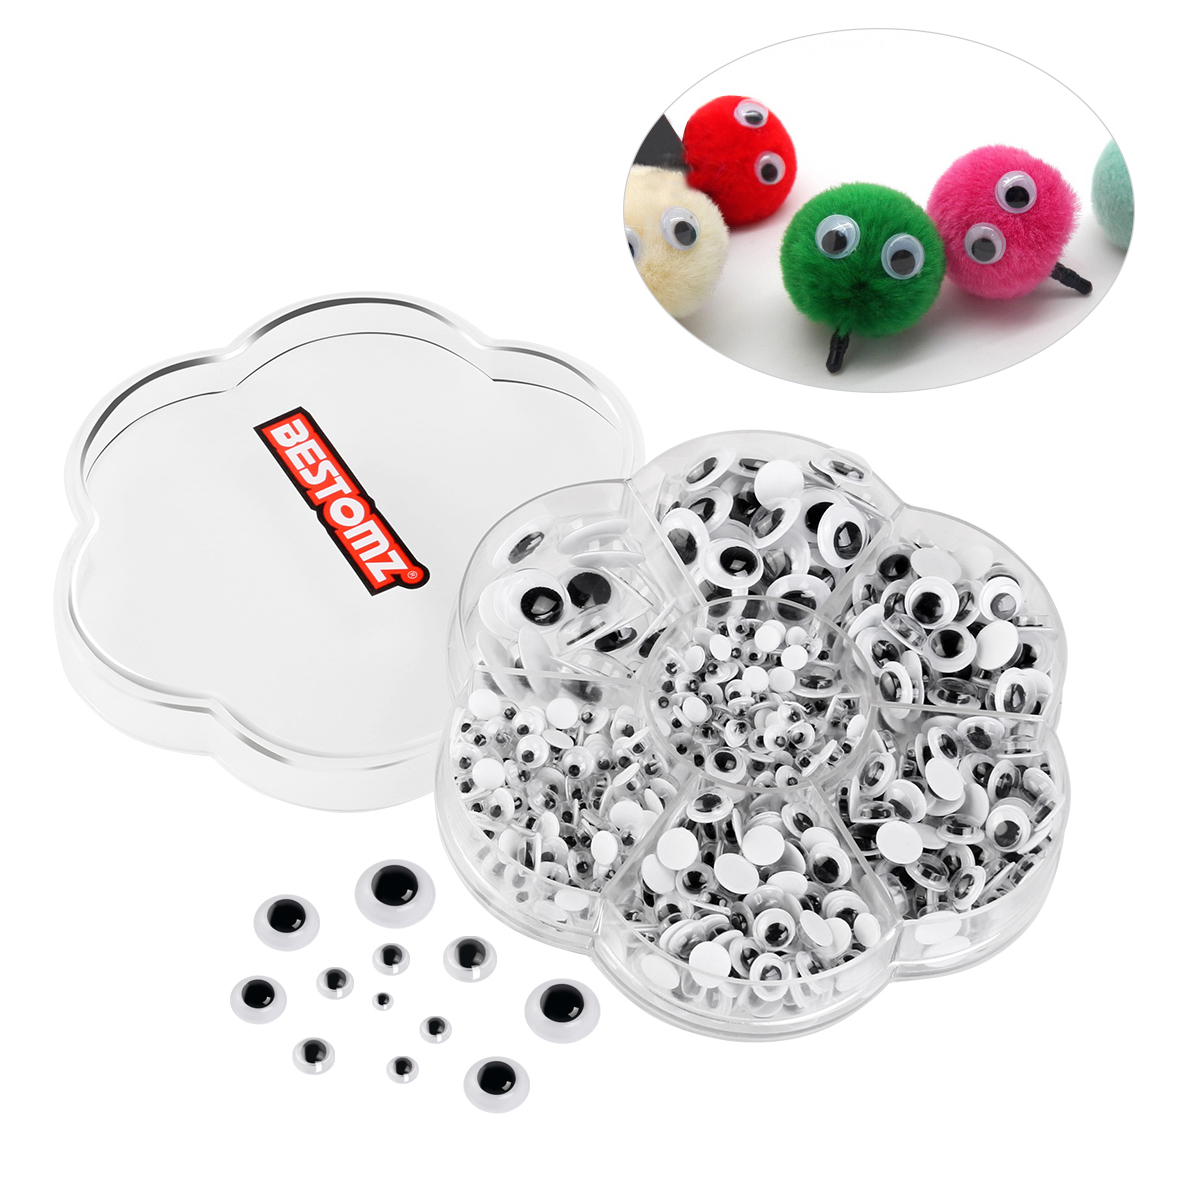 BESTOMZ Wiggle Googly Eyes Self-adhesive DIY Scrapbooking Crafts Toy Accessories with Assorted Size (Black & White), 700 Pieces Pack